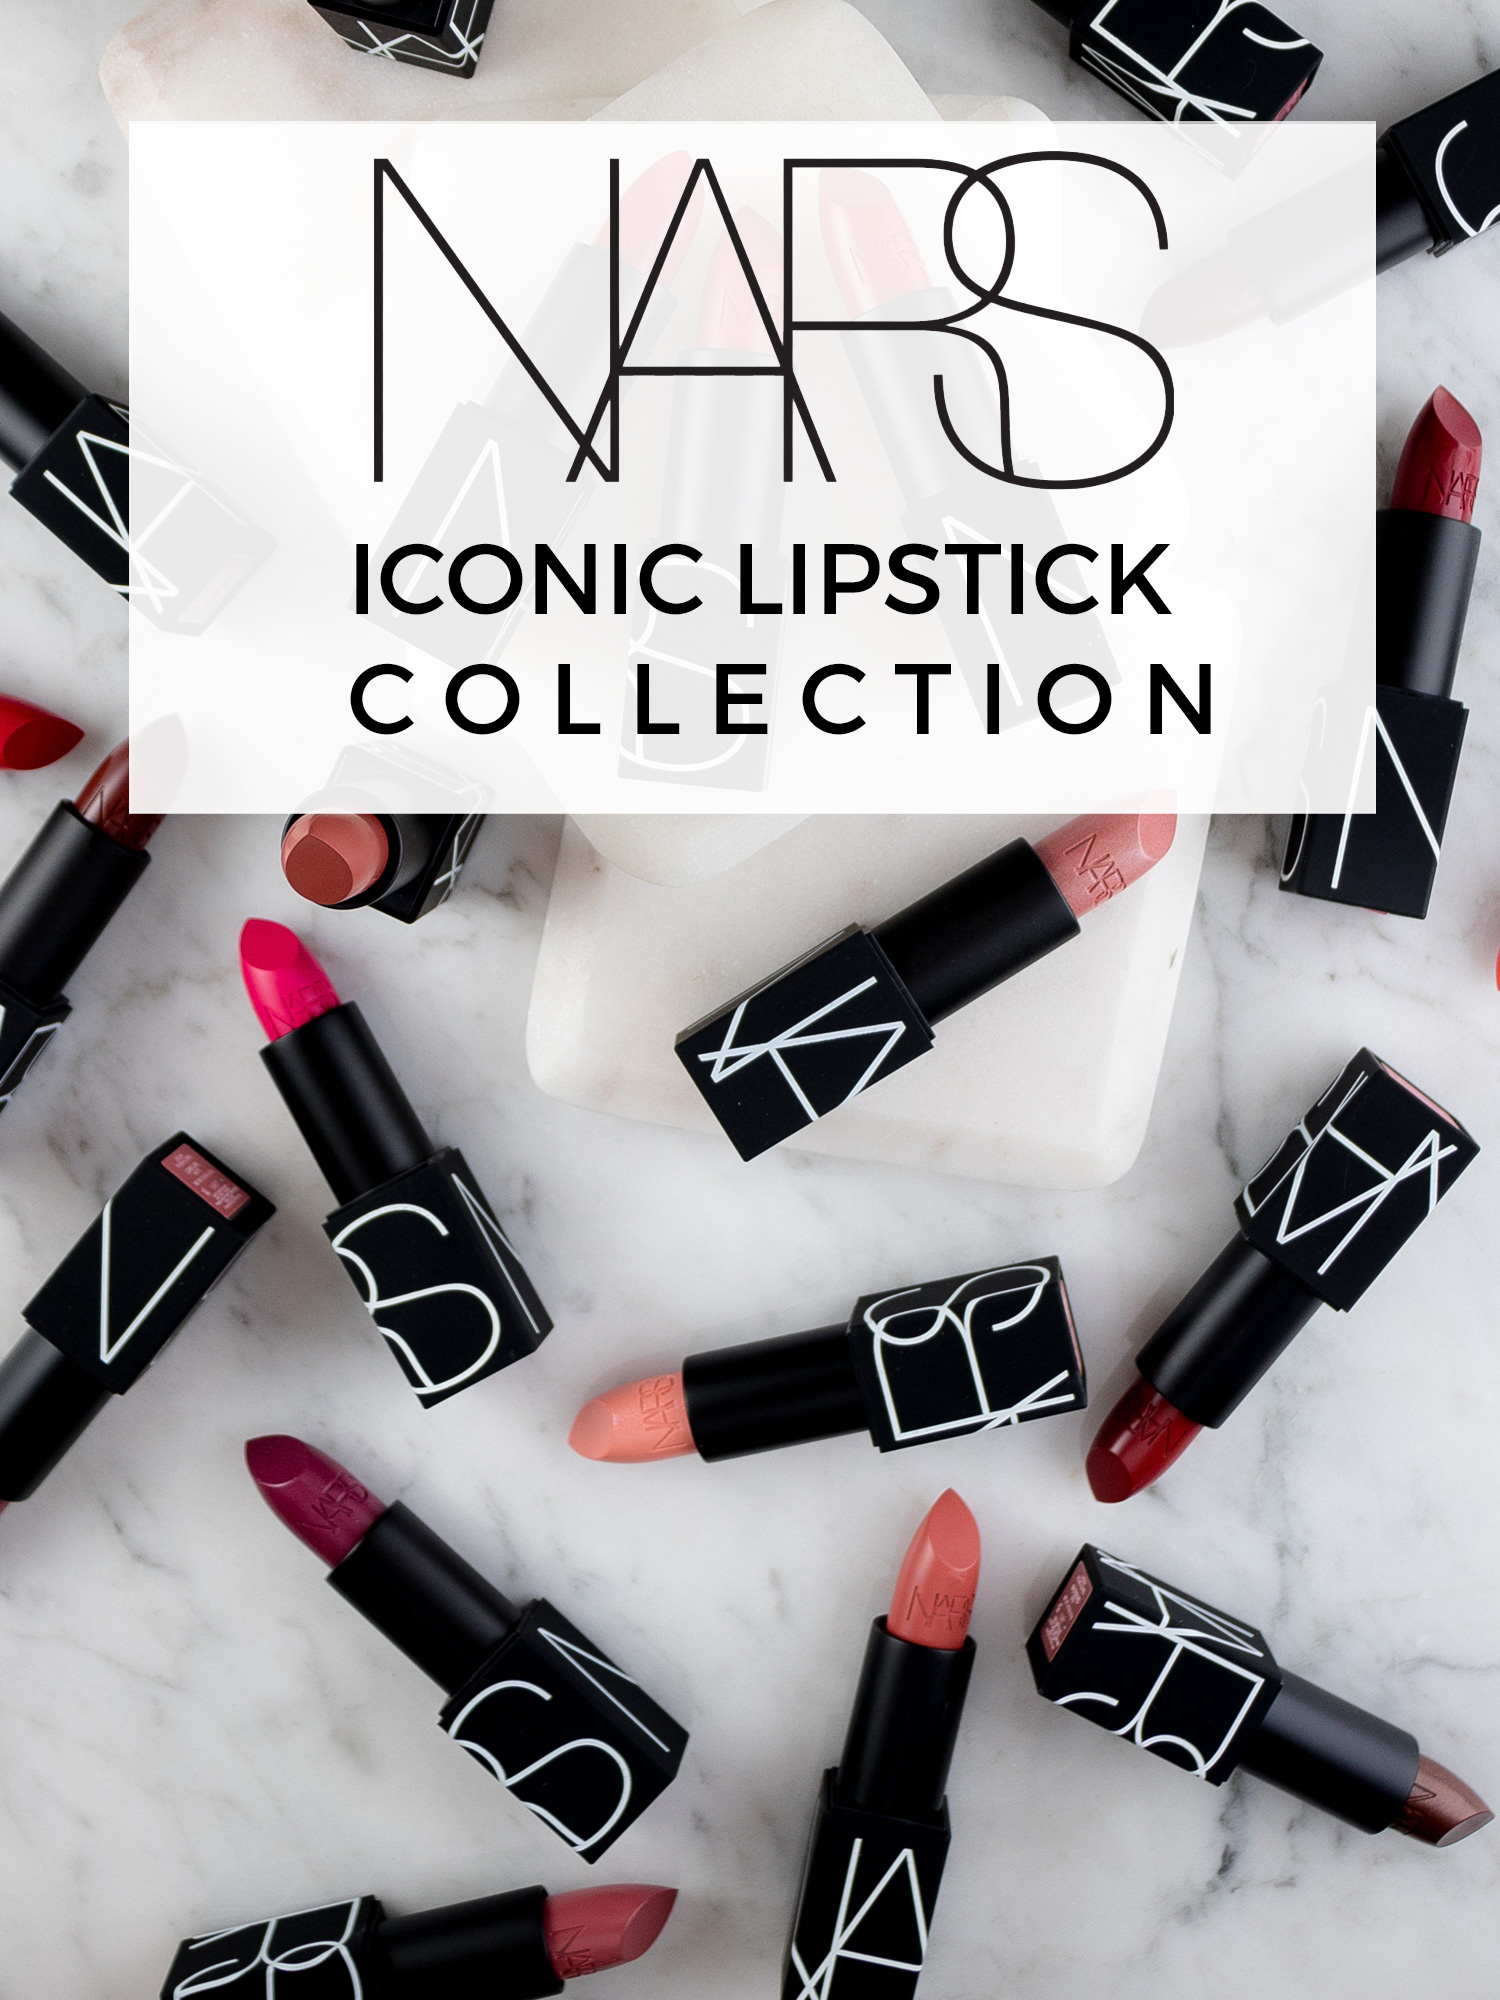 NARS Iconic Lipstick Collection